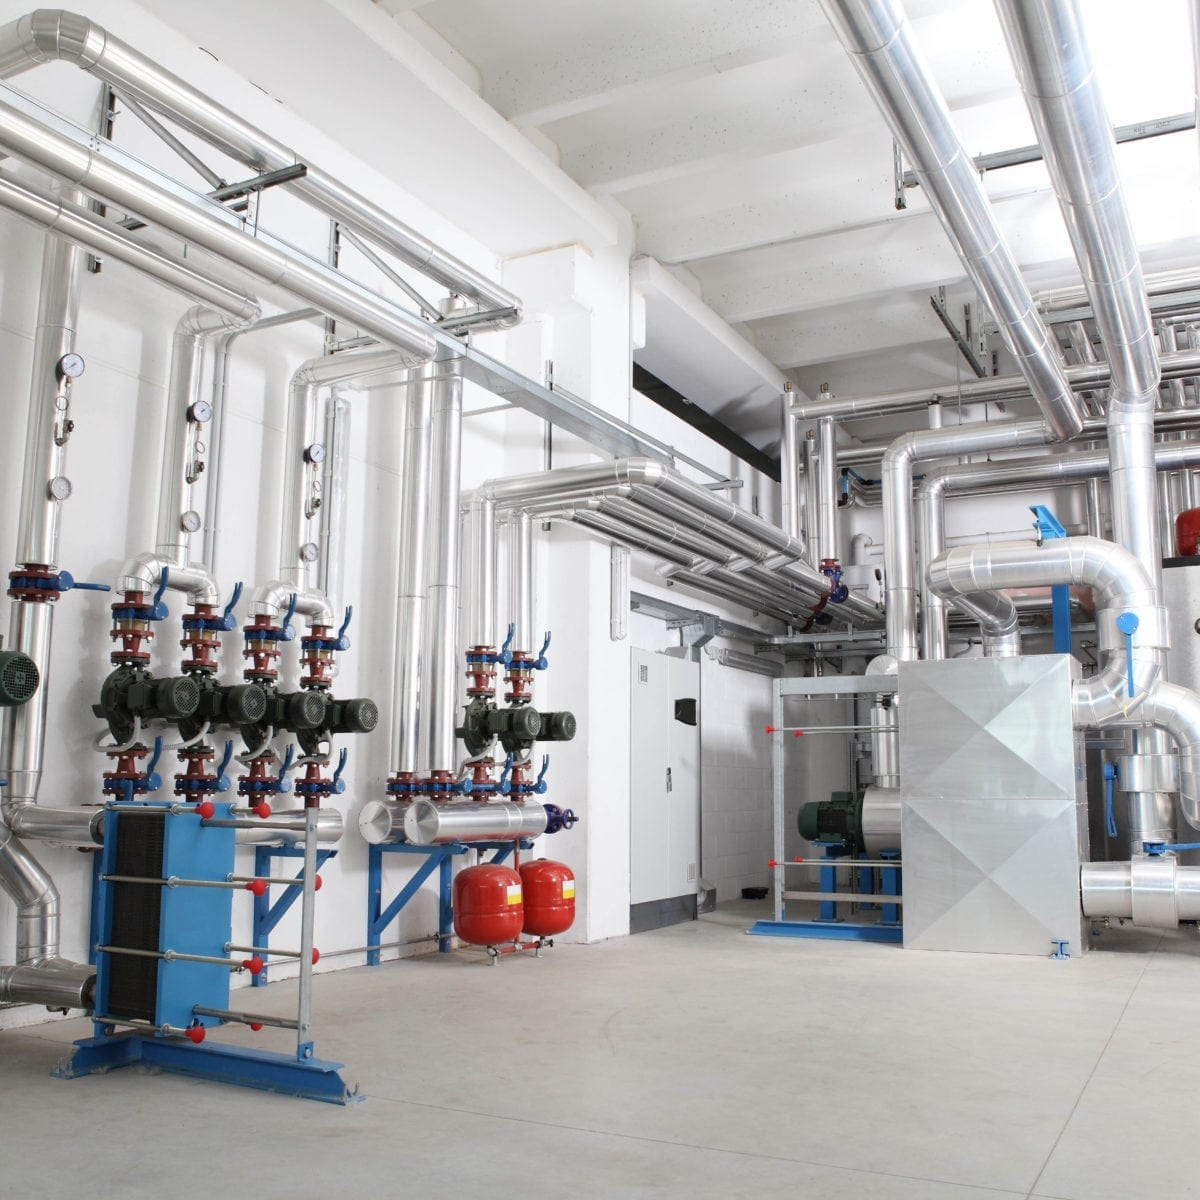 District Heating Plant Room Image